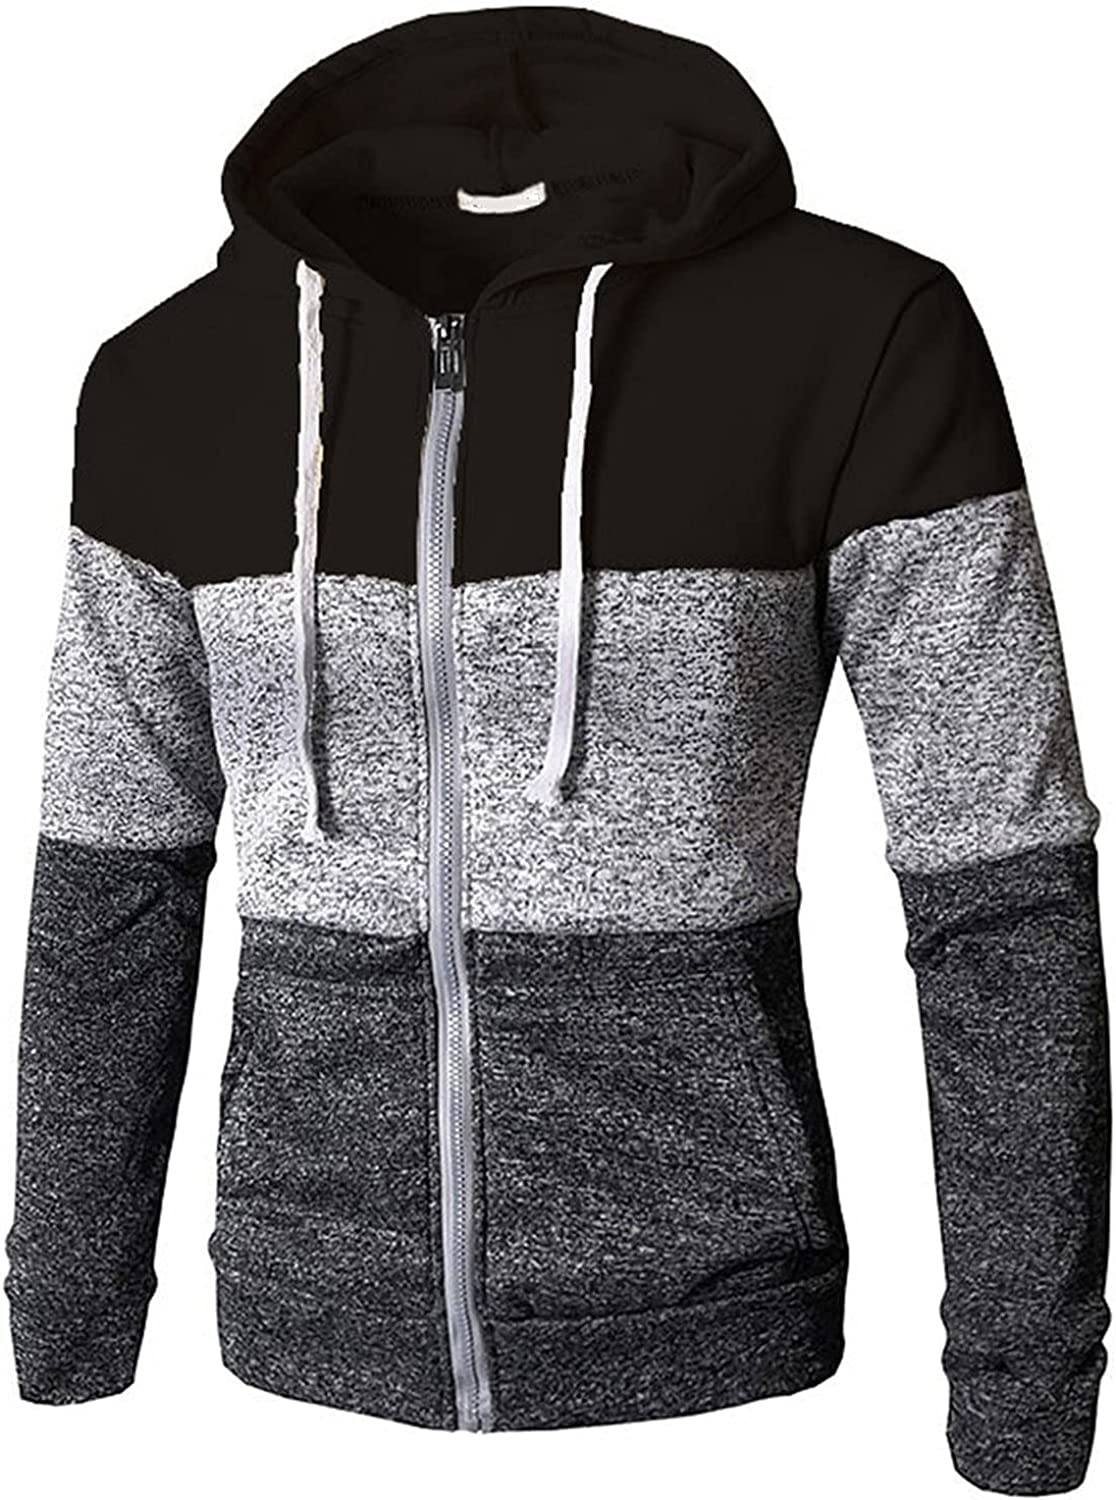 XXBR Stitching Hoodies for Mens, Fall Color Block Patchwork Drawstring Hooded Sweatshirts Casual Pullover with Pocket